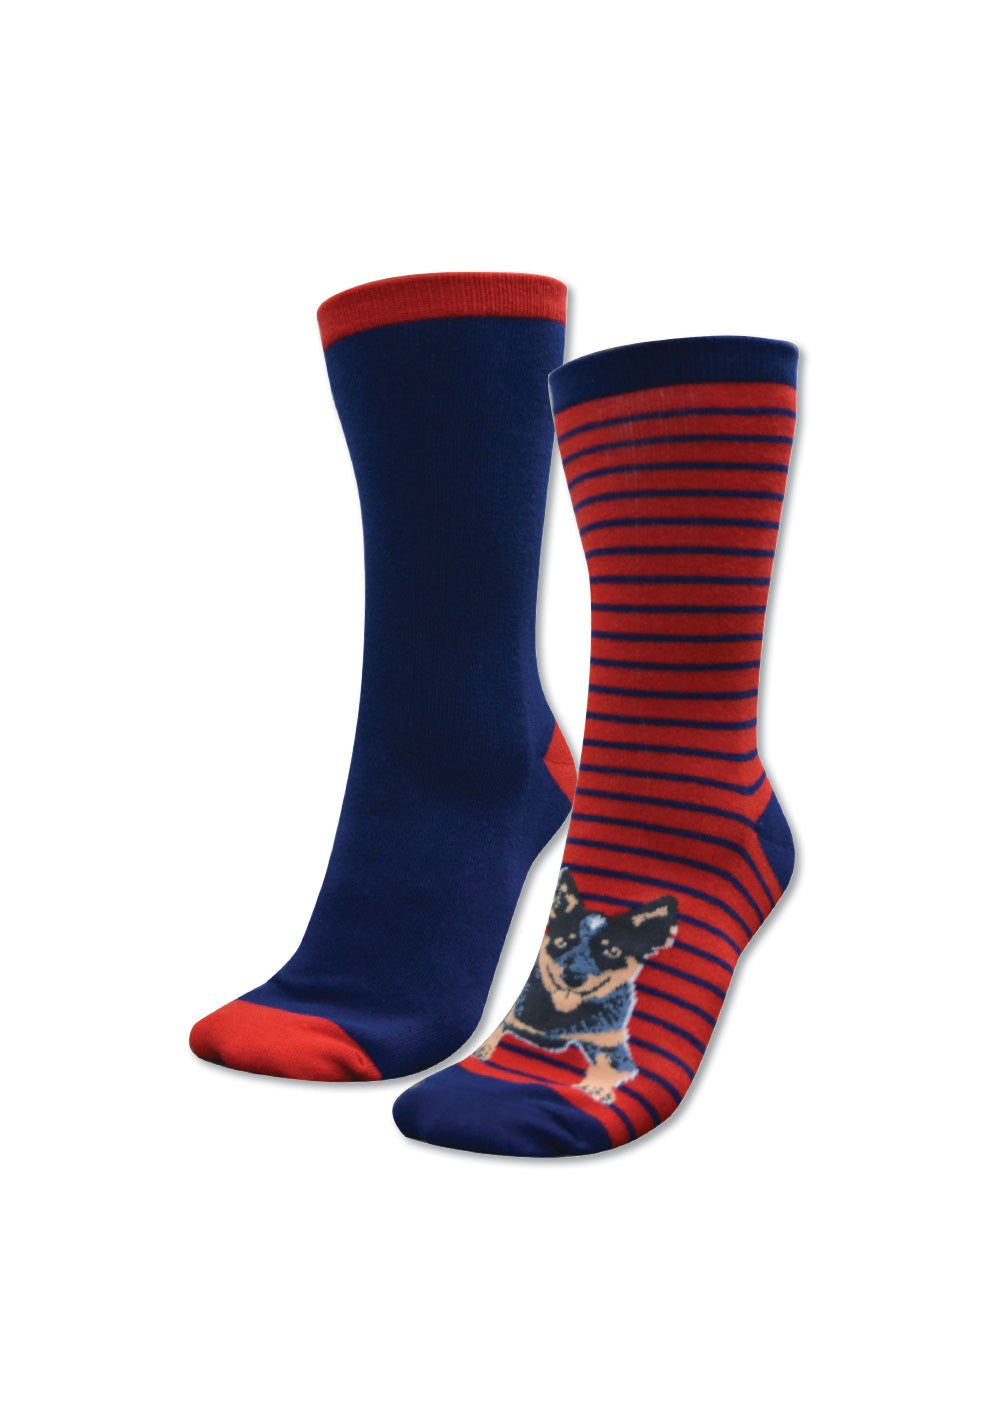 Thomas Cook | Womens | Socks | Homestead Twin Pack | Navy & Red